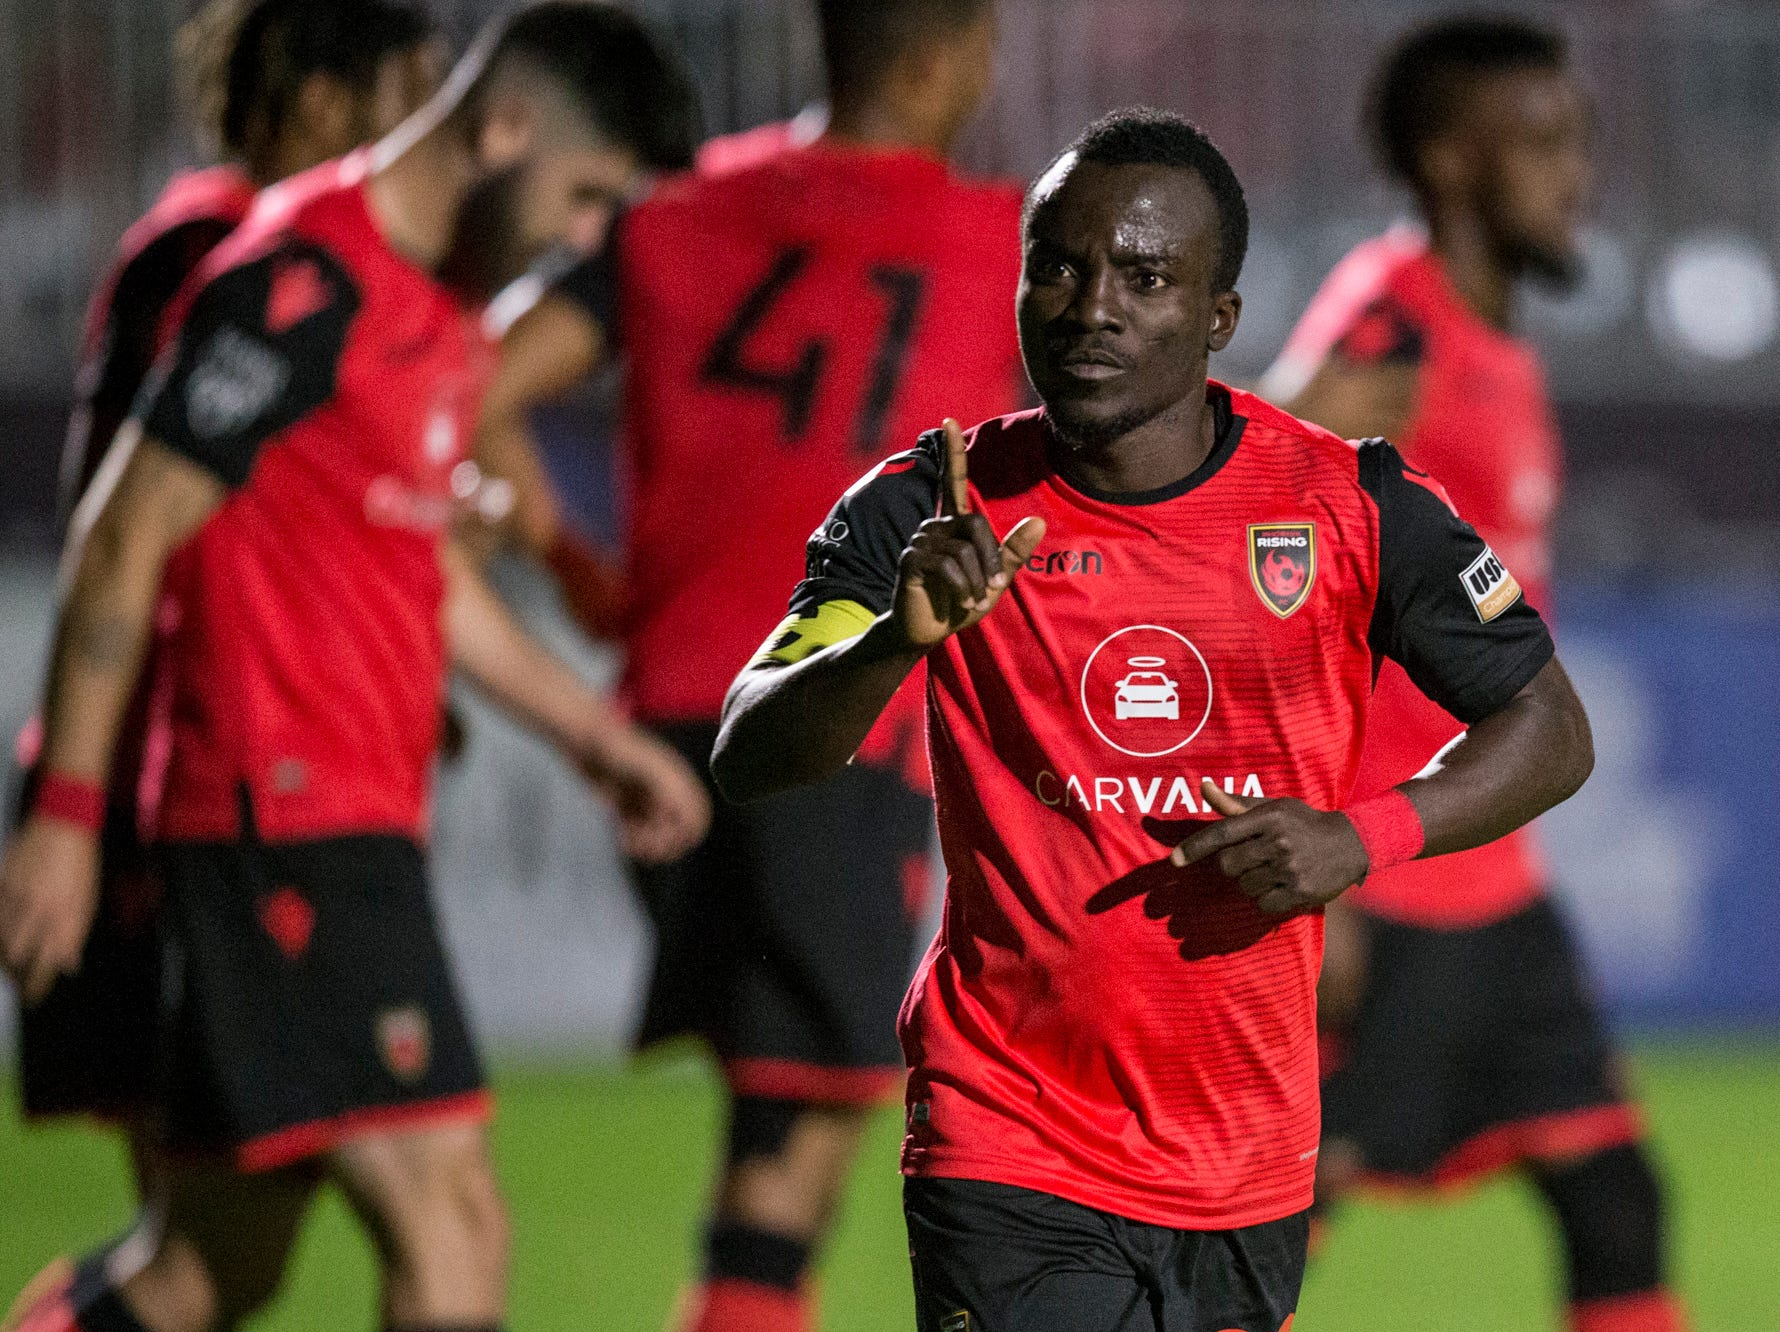 Phoenix Rising's Solomon Asante celebrates after a goal against Colorado Springs in the second half on Saturday, Mar. 30, 2019, at Casino Arizona Field in Tempe, Ariz.